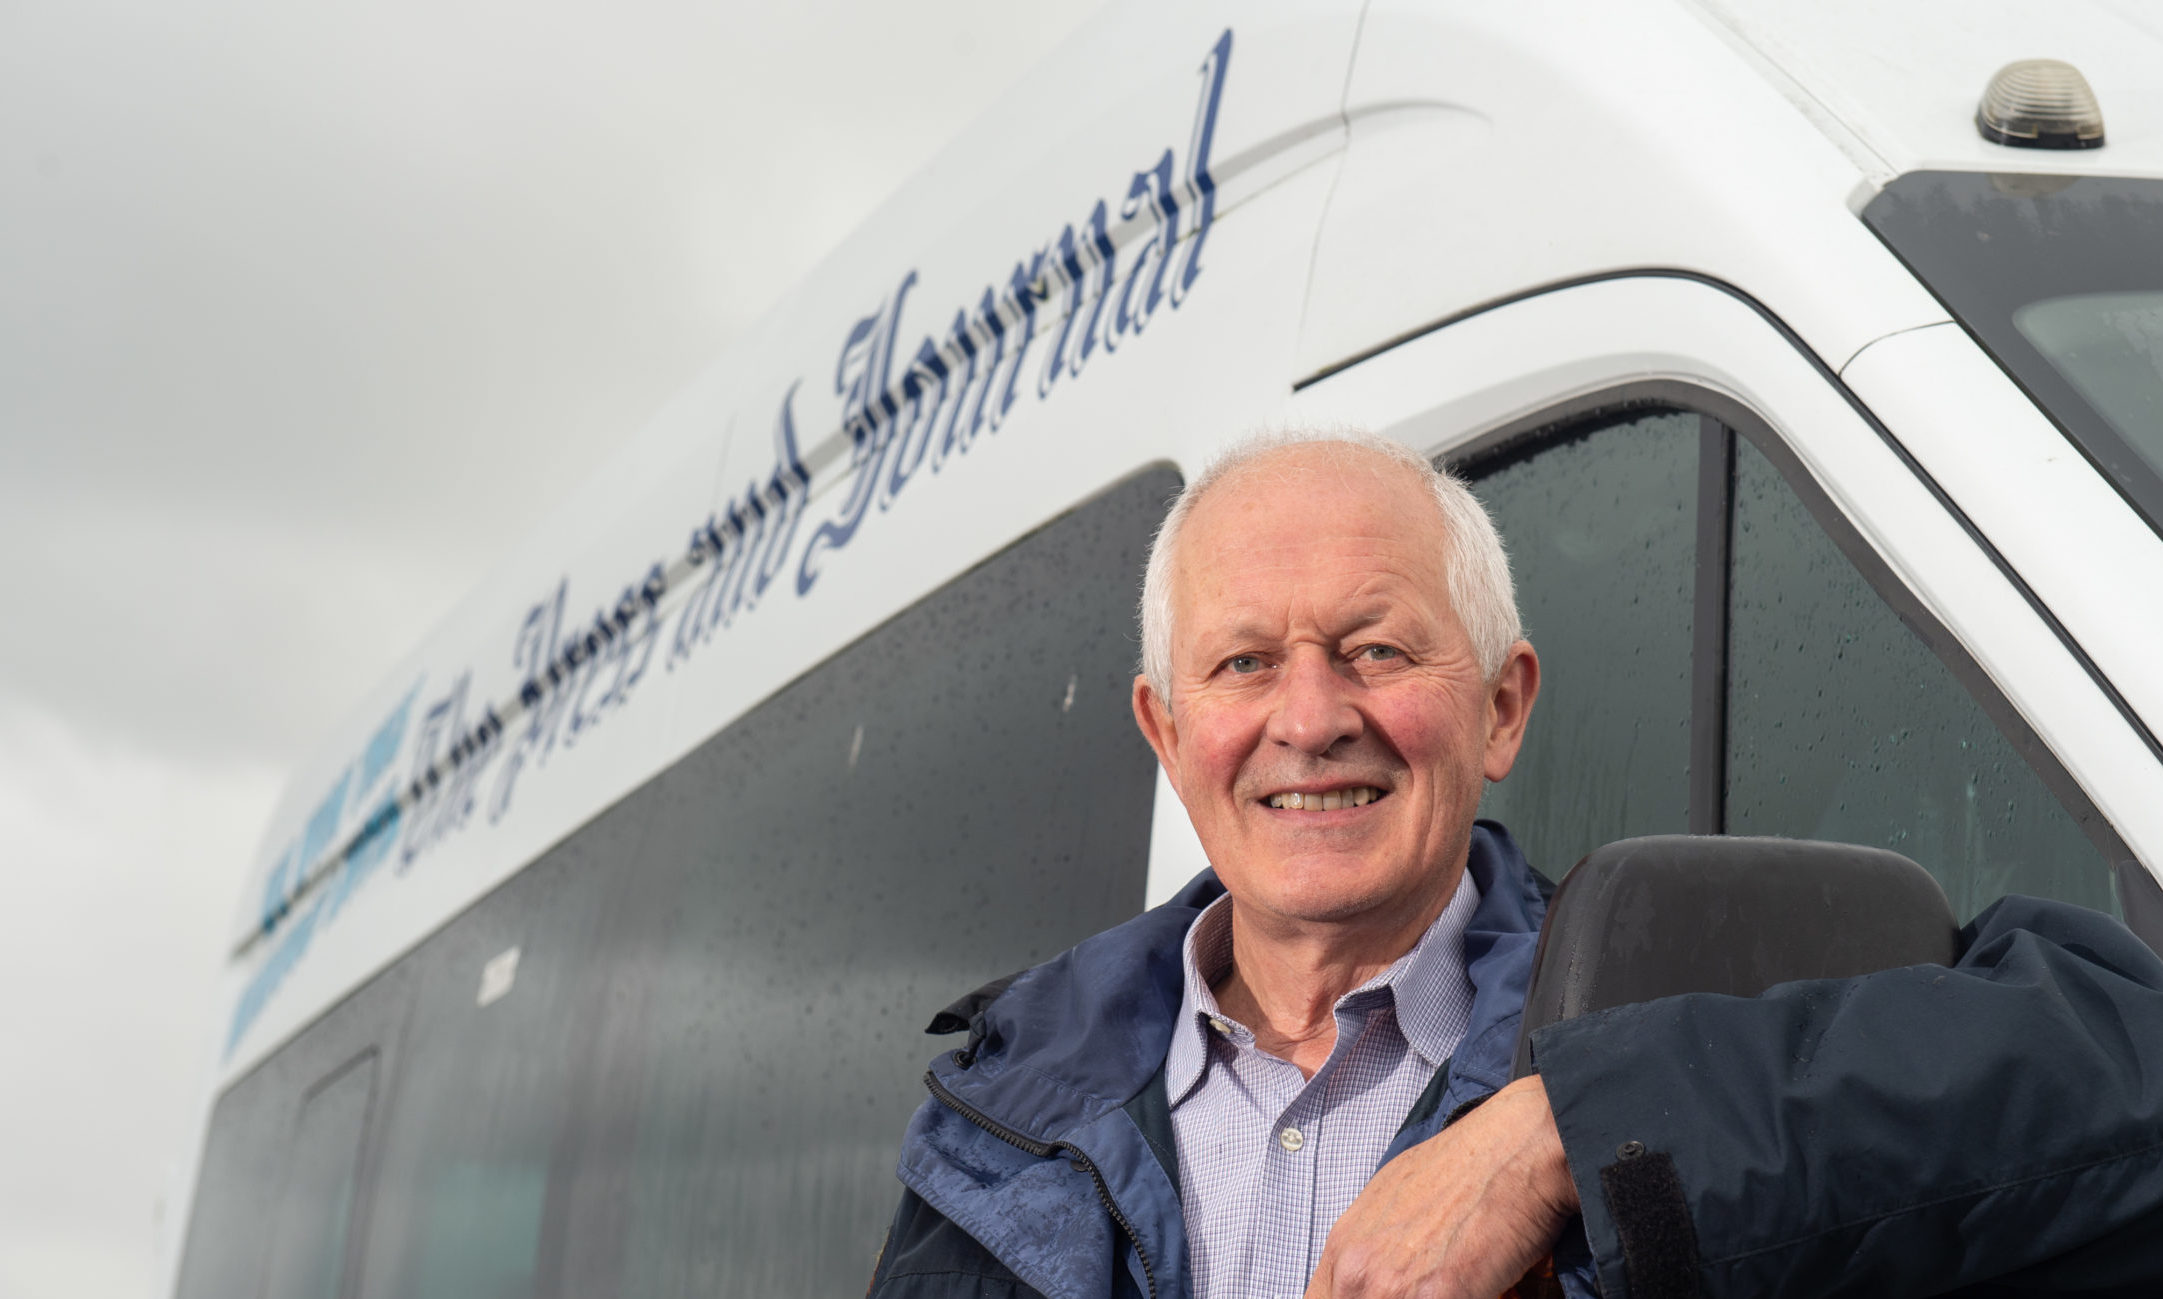 Jim Patterson, a member of Burghead and Cummingston Community Council, with the minibus won from the P&J. Picture by Jason Hedges.